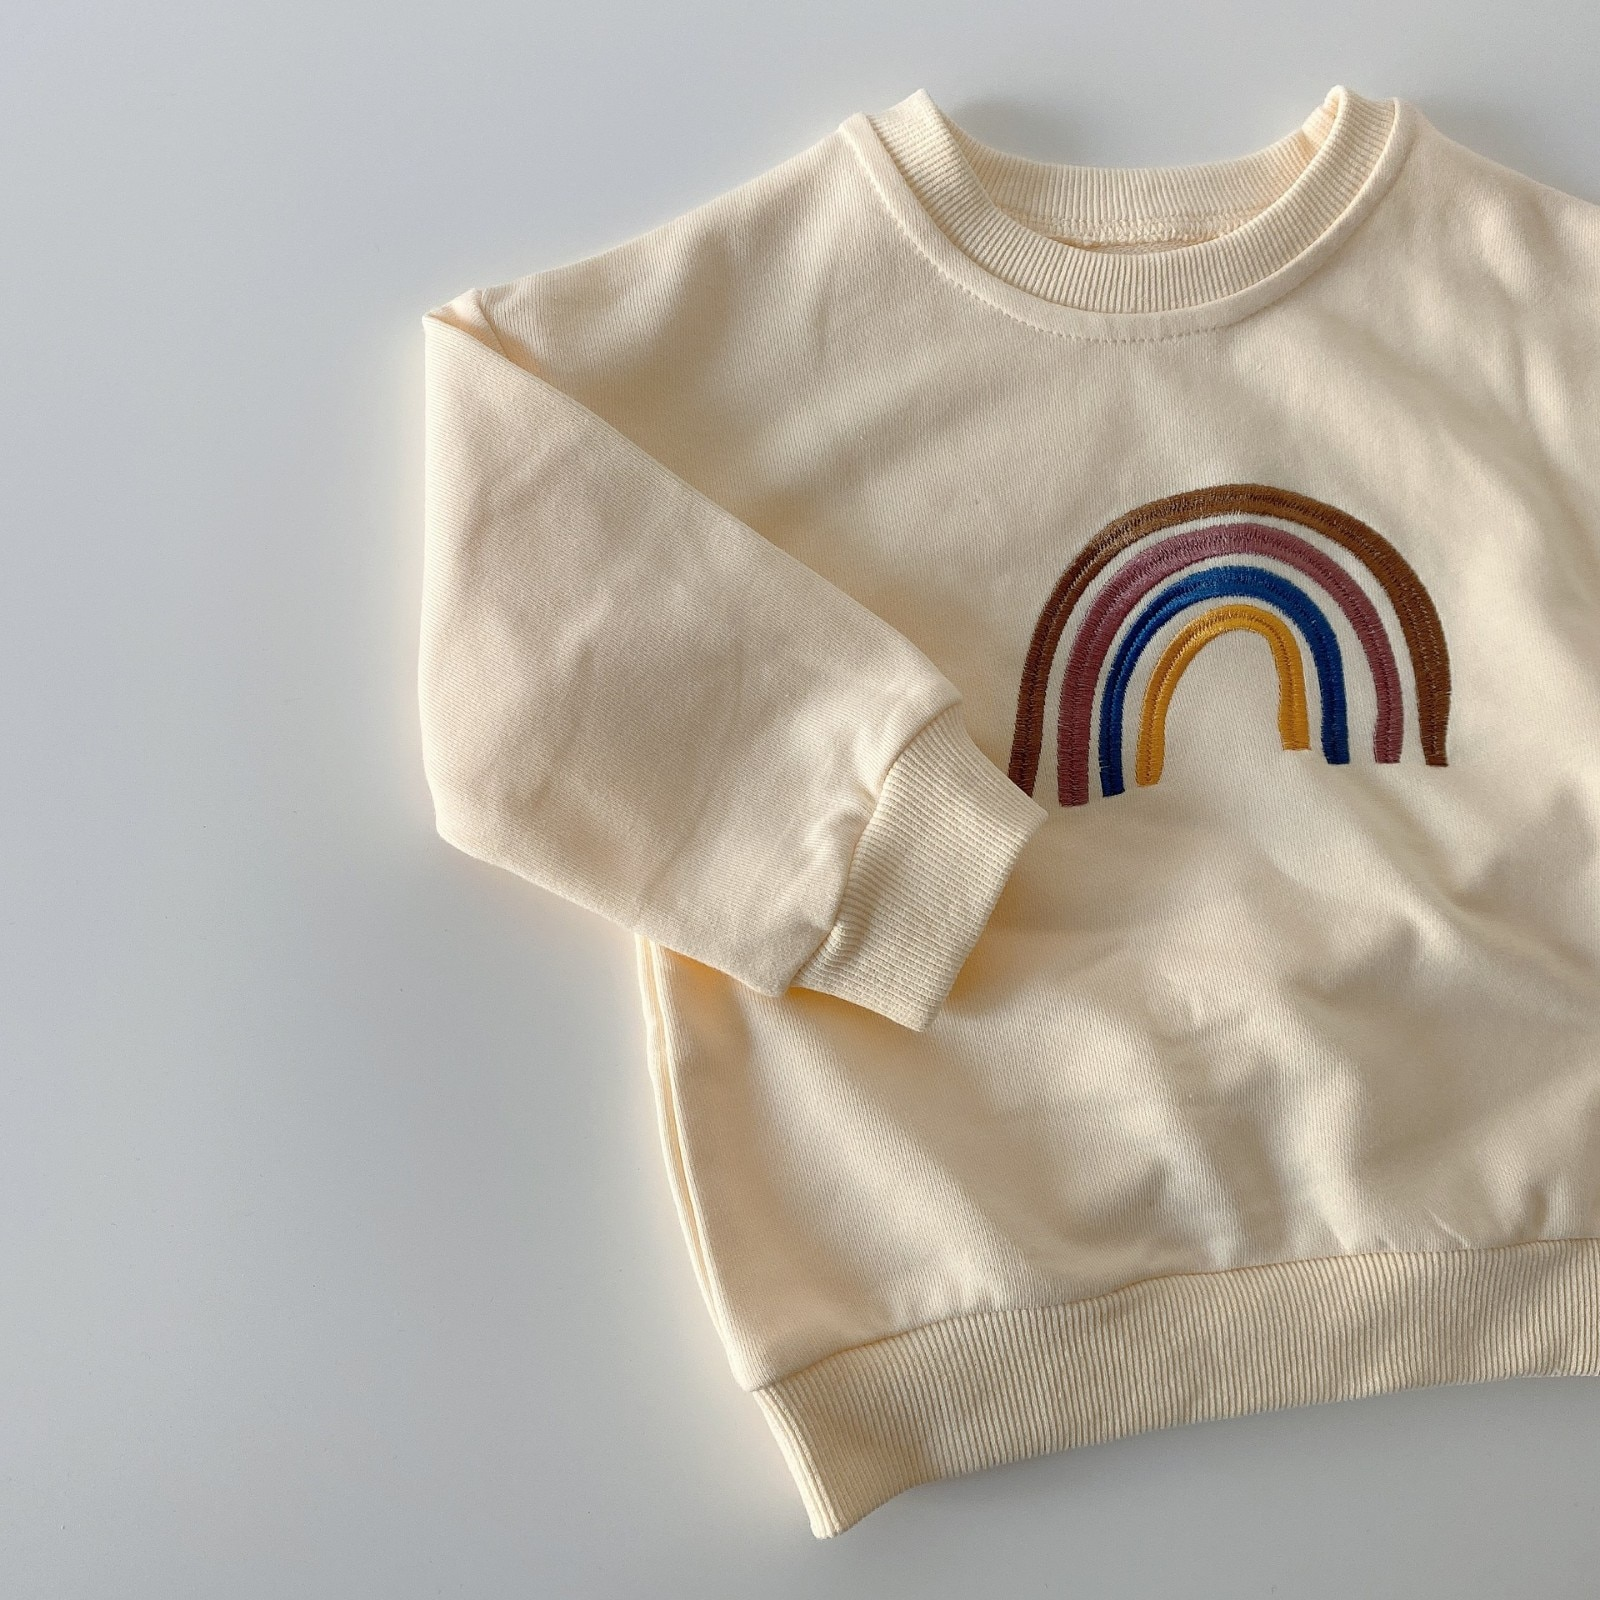 Autumn Toddler Baby Girls Boys Rainbow Embroidery Sweatshirts Tops Kids Long Sleeve T-shirt Sweatshirt Baby Clothes Outfits